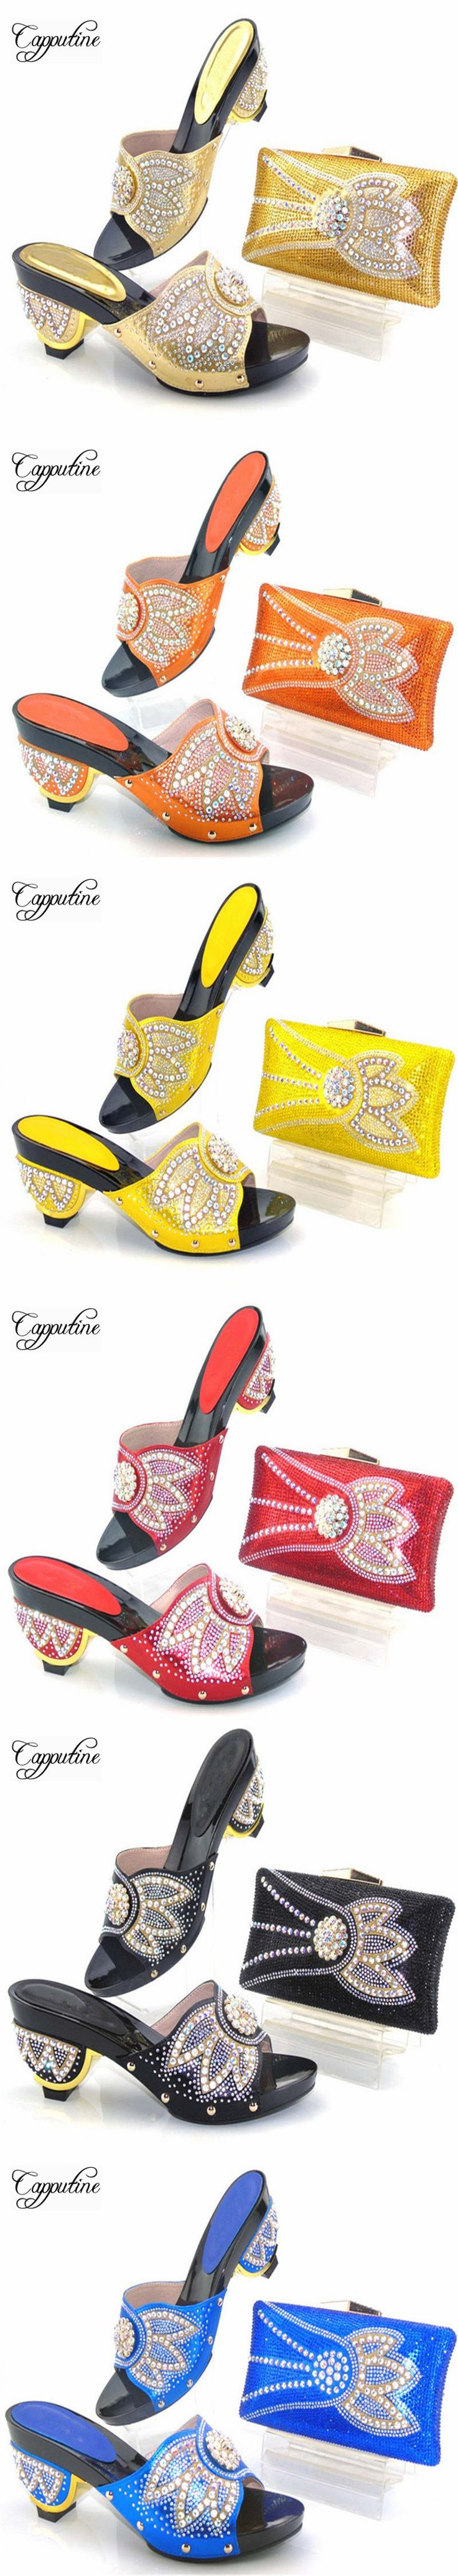 Capputine New Africa Fashion Woman Shoes And Purse Set For Party Nigeria Rhinestone High Heels Shoes And Bag Set TYS17-40